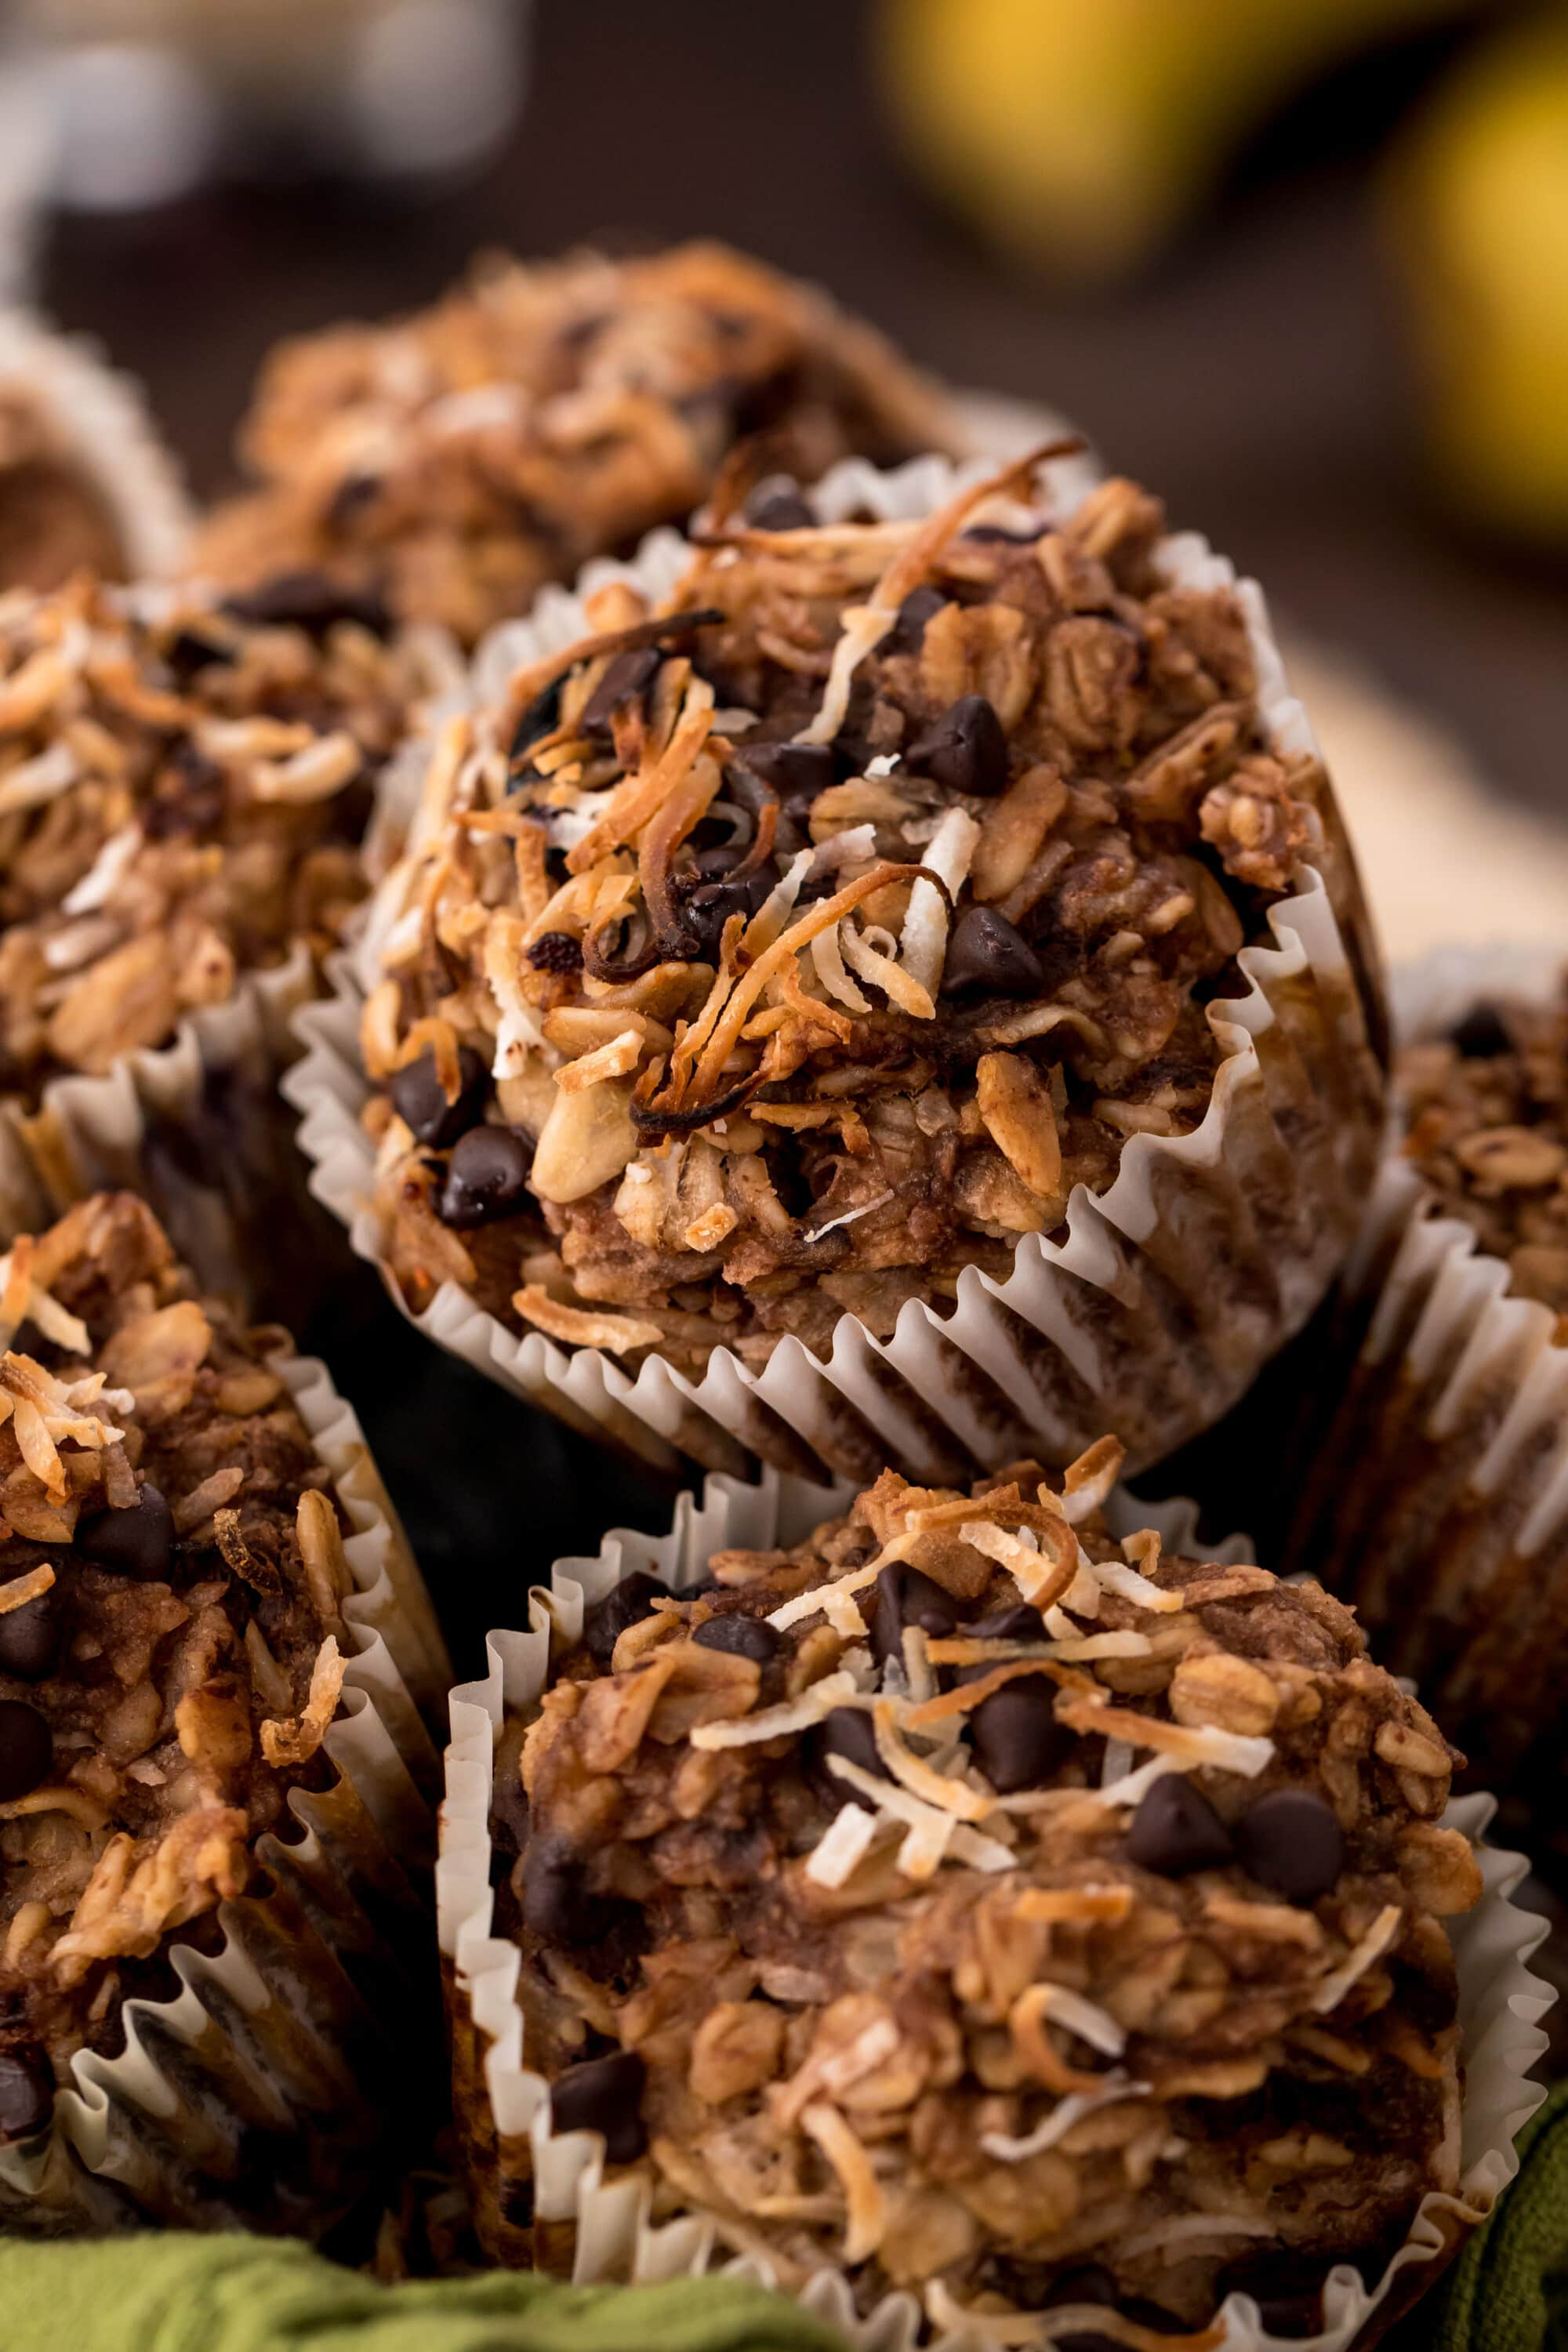 5D4B7797 - What The Fudge - Katie Higgins - Oatmeal Cupcakes To Go - HIGH RES